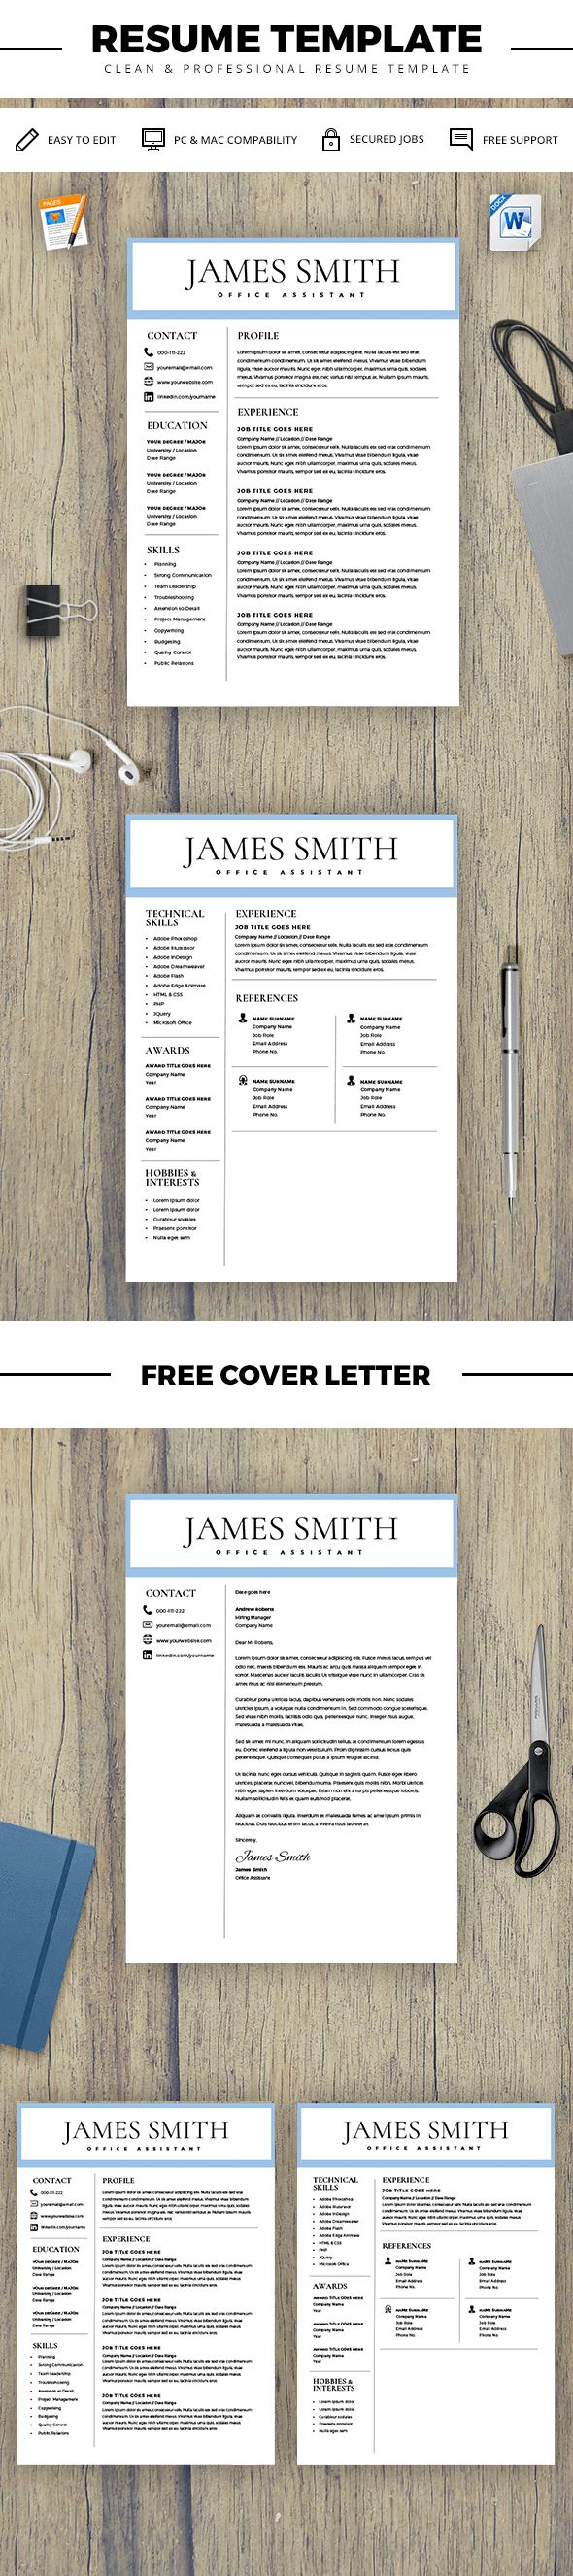 Pretty 10 Best Resumes Big 10 Steps To Creating An Effective Resume Regular 100 Free Resume 1099 Employee Contract Template Youthful 1300 Resume Government Samples Selection Criteria Blue15 Minute Schedule Template 25  Best Ideas About Resume Templates For Word On Pinterest ..